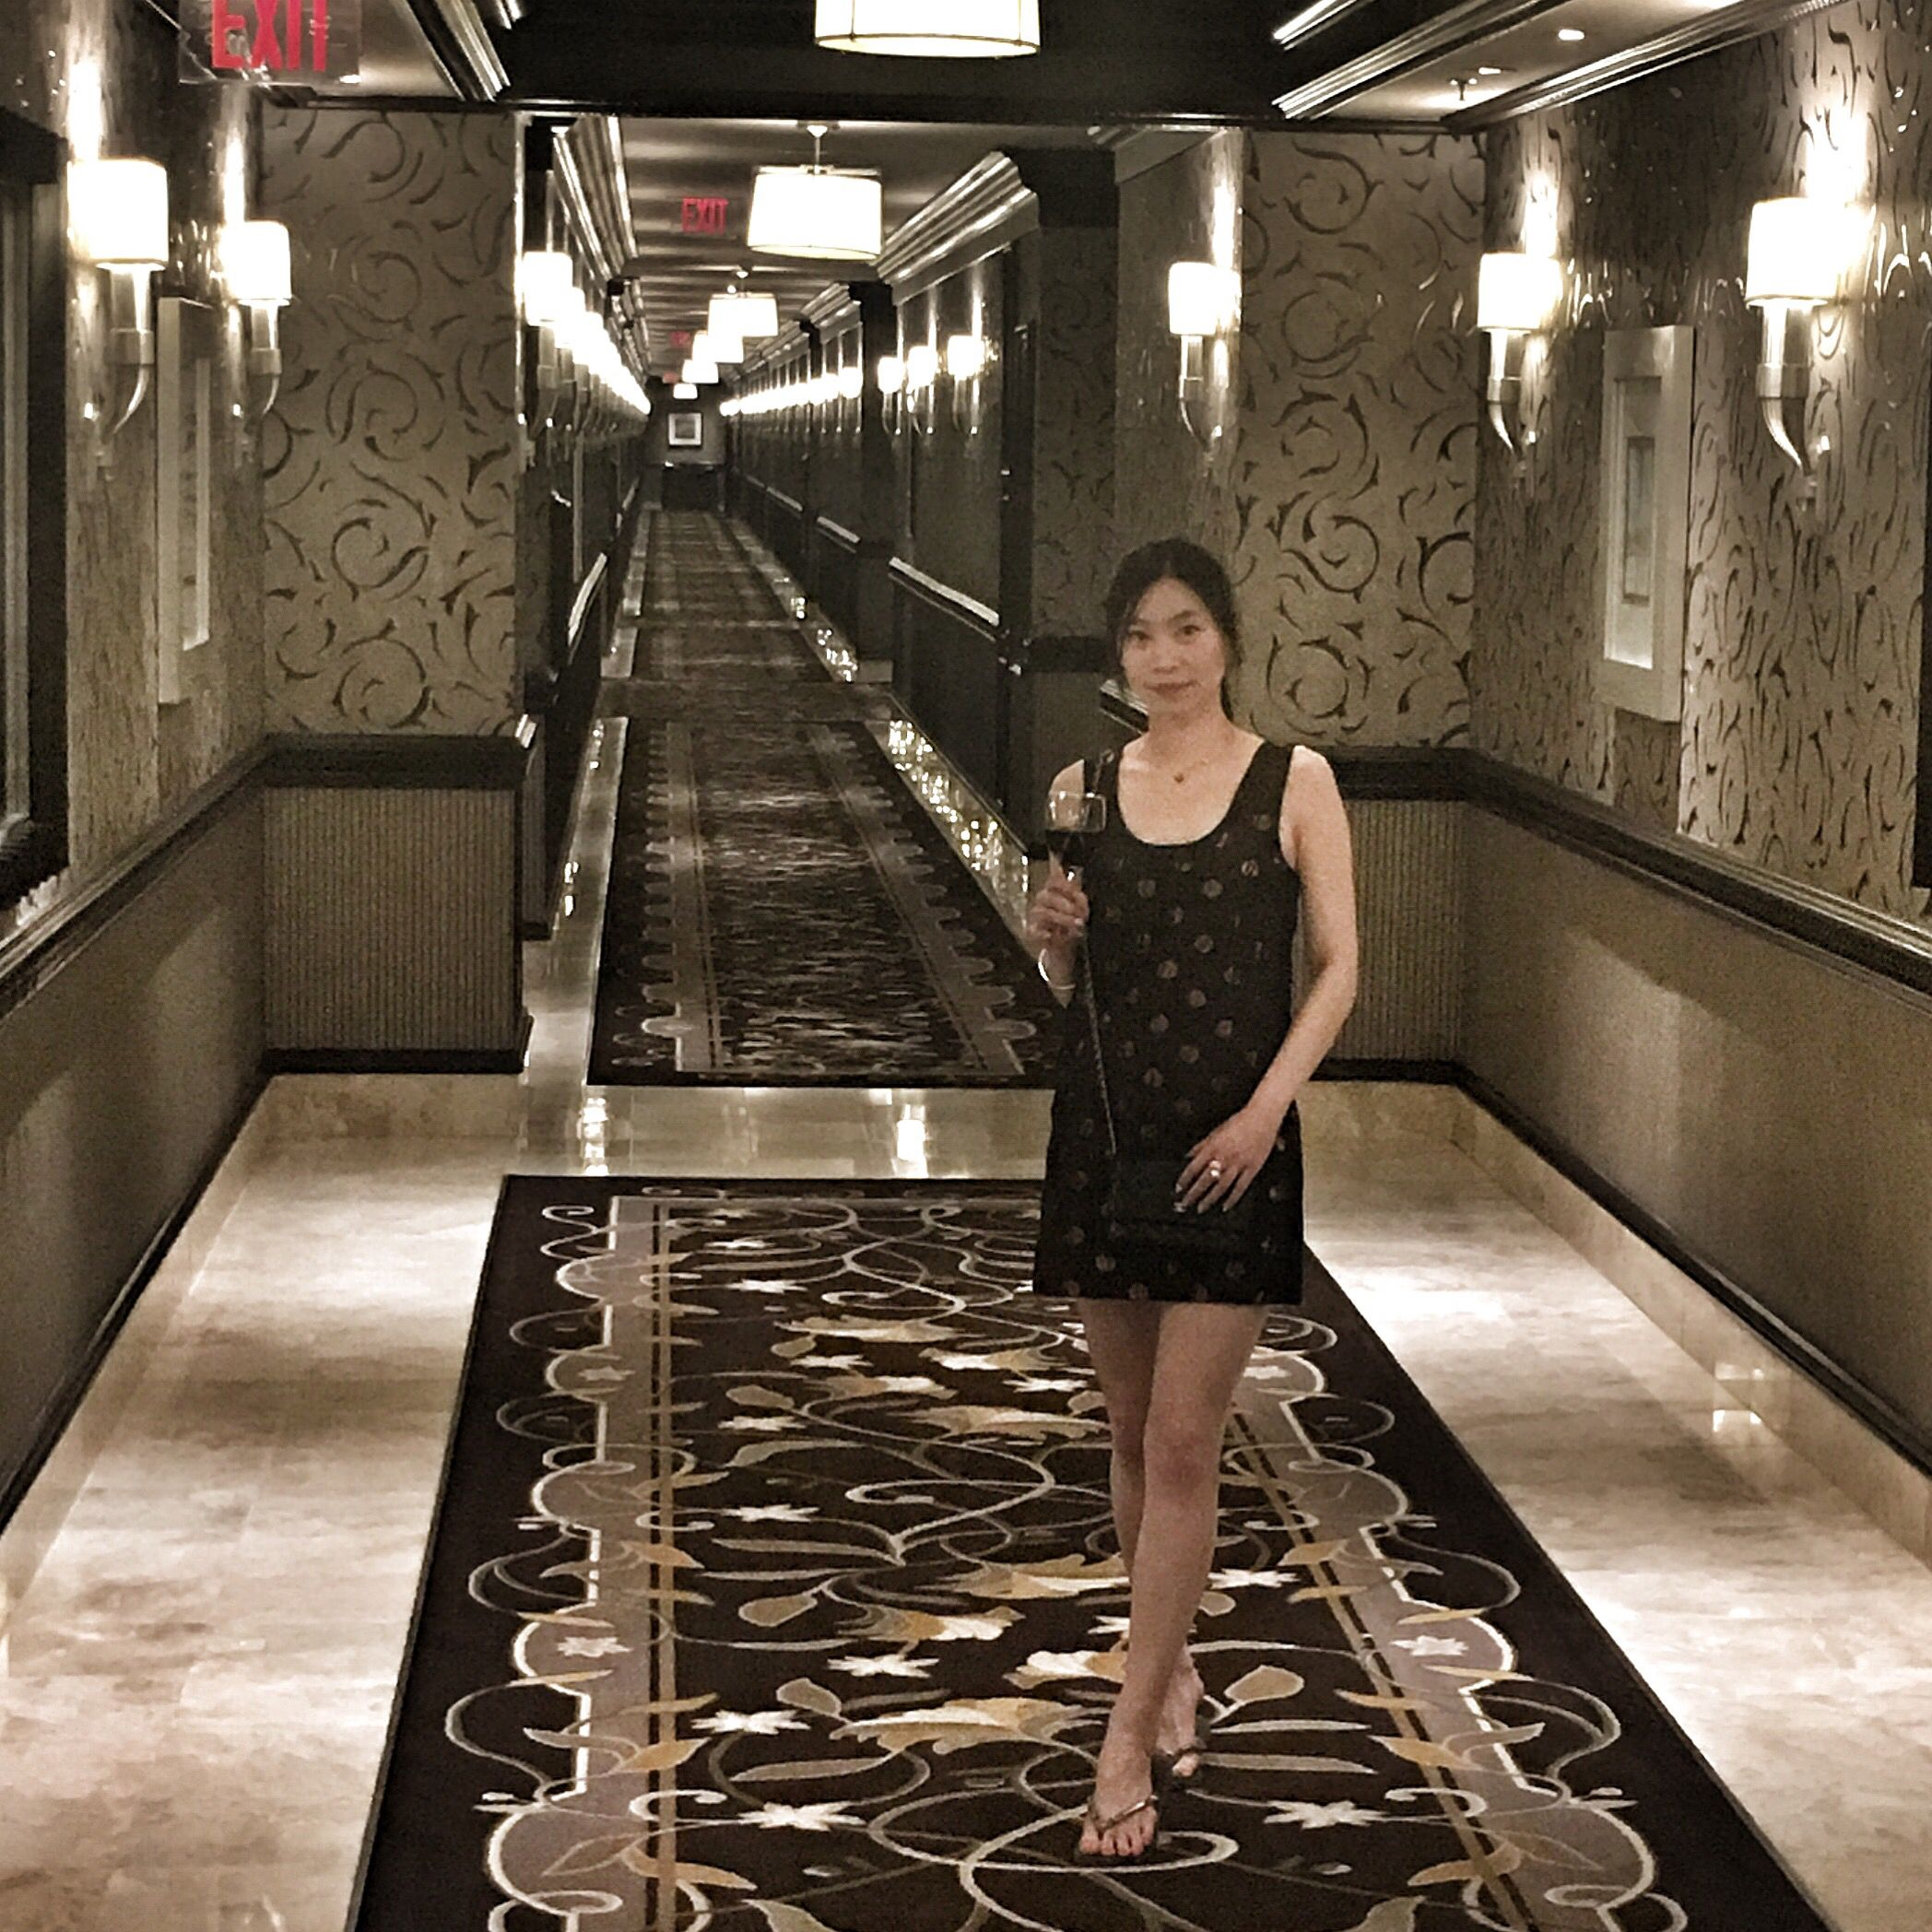 The Palms Apartments In Las Vegas: Endless Hallway On The Bellagio Hotel's Penthouse Floor